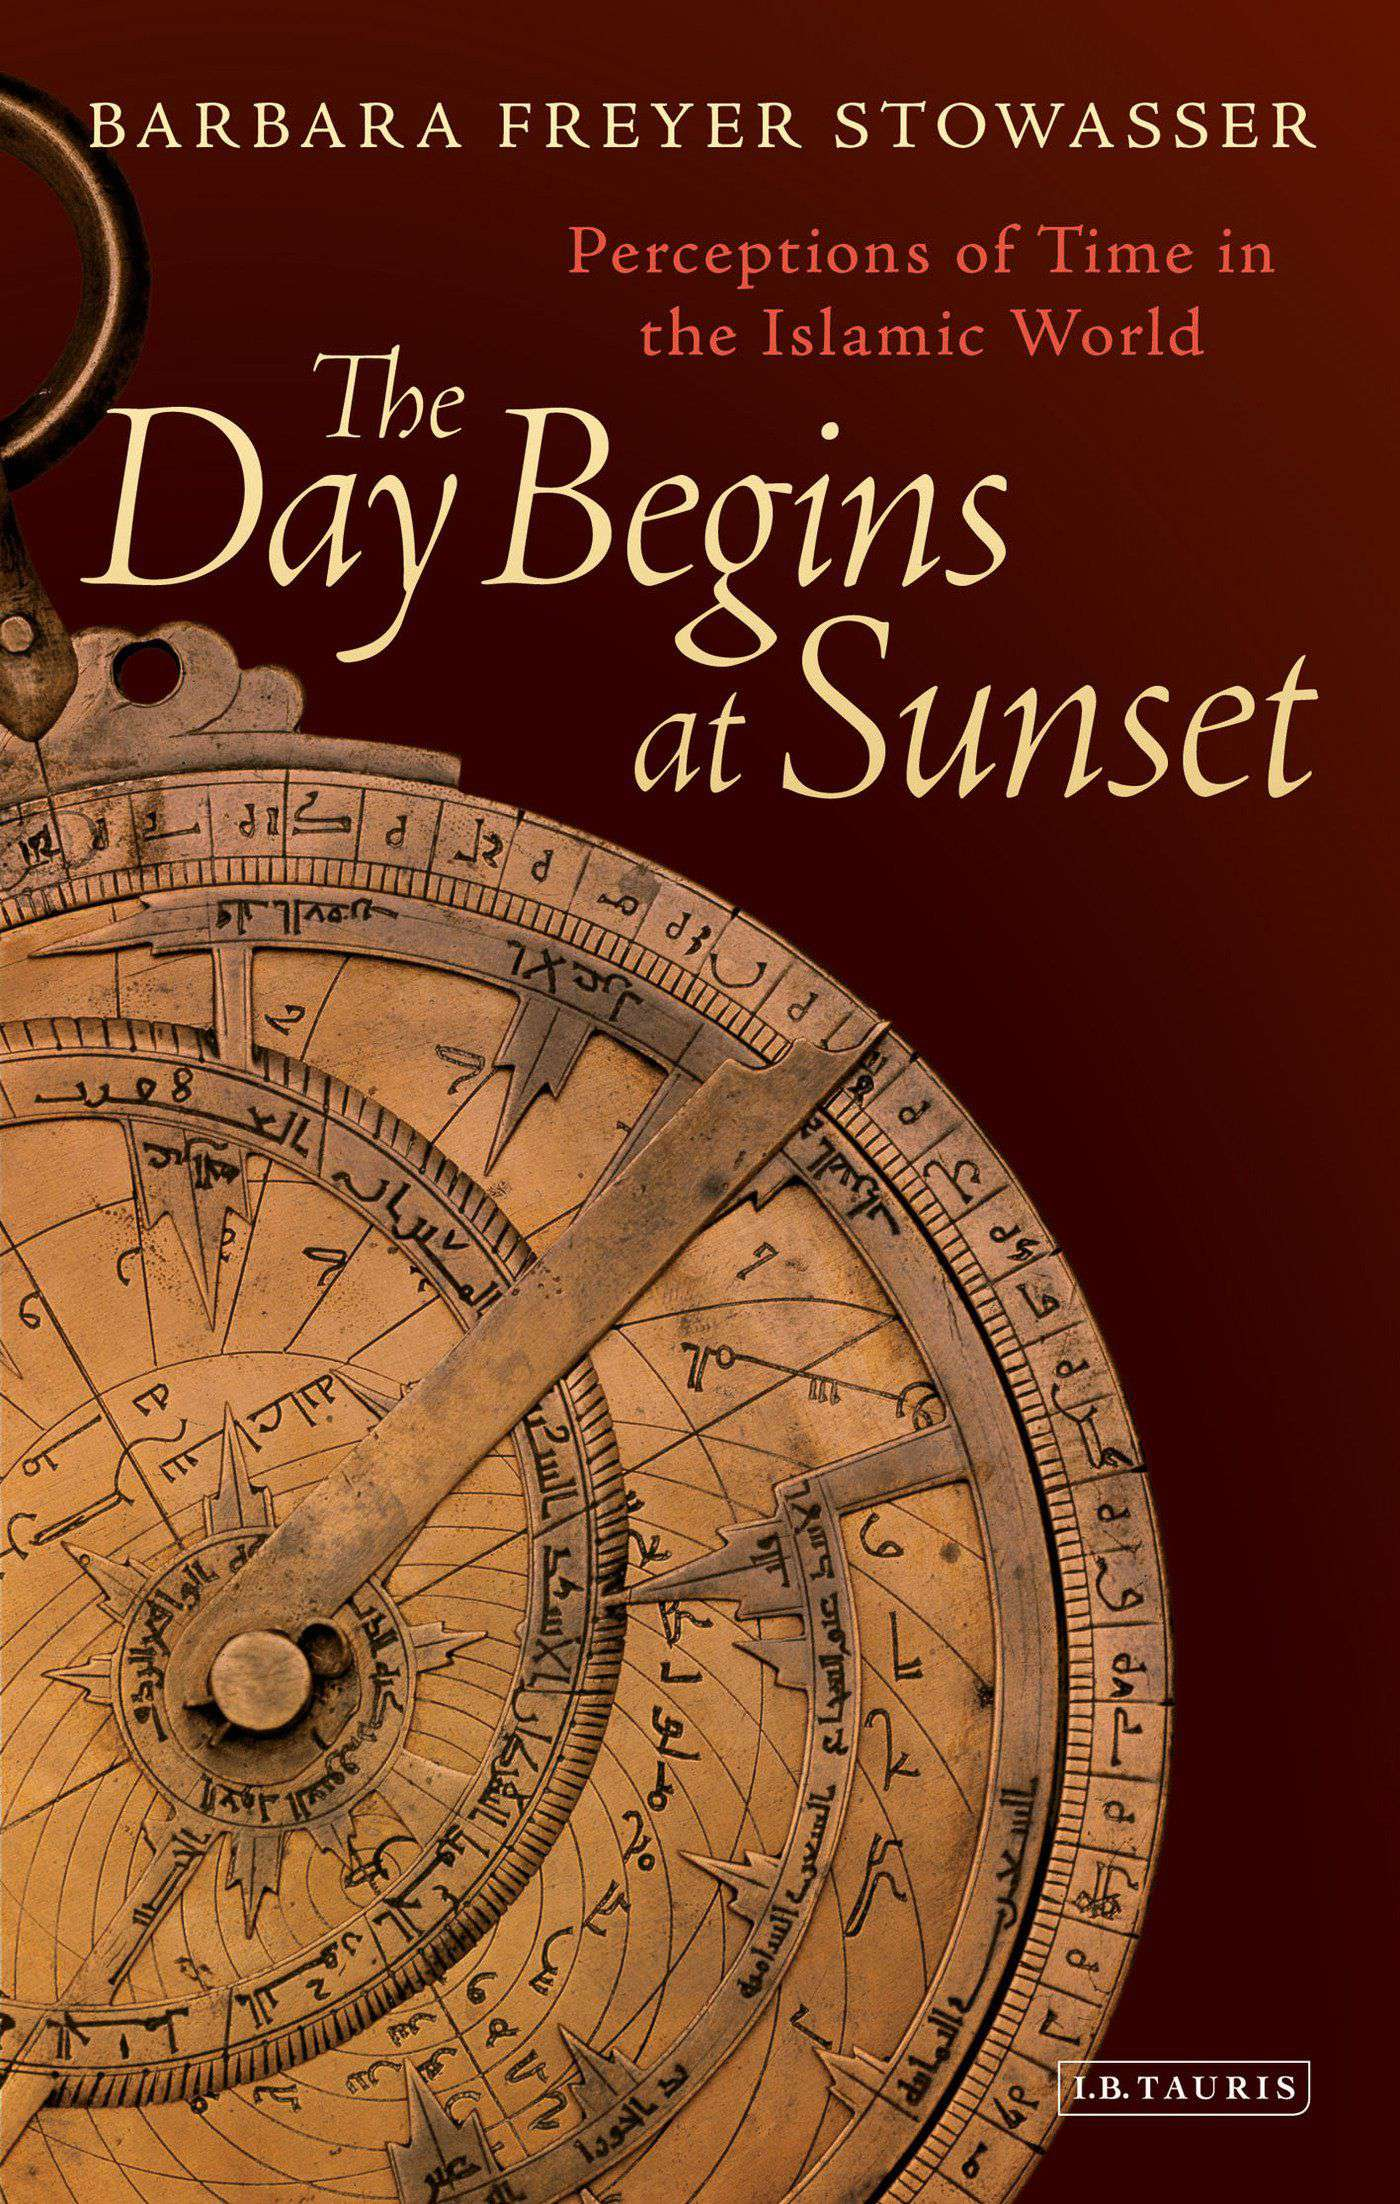 The Day Begins at Sunset: Perceptions of Time in the Islamic World (Library of Middle East History)